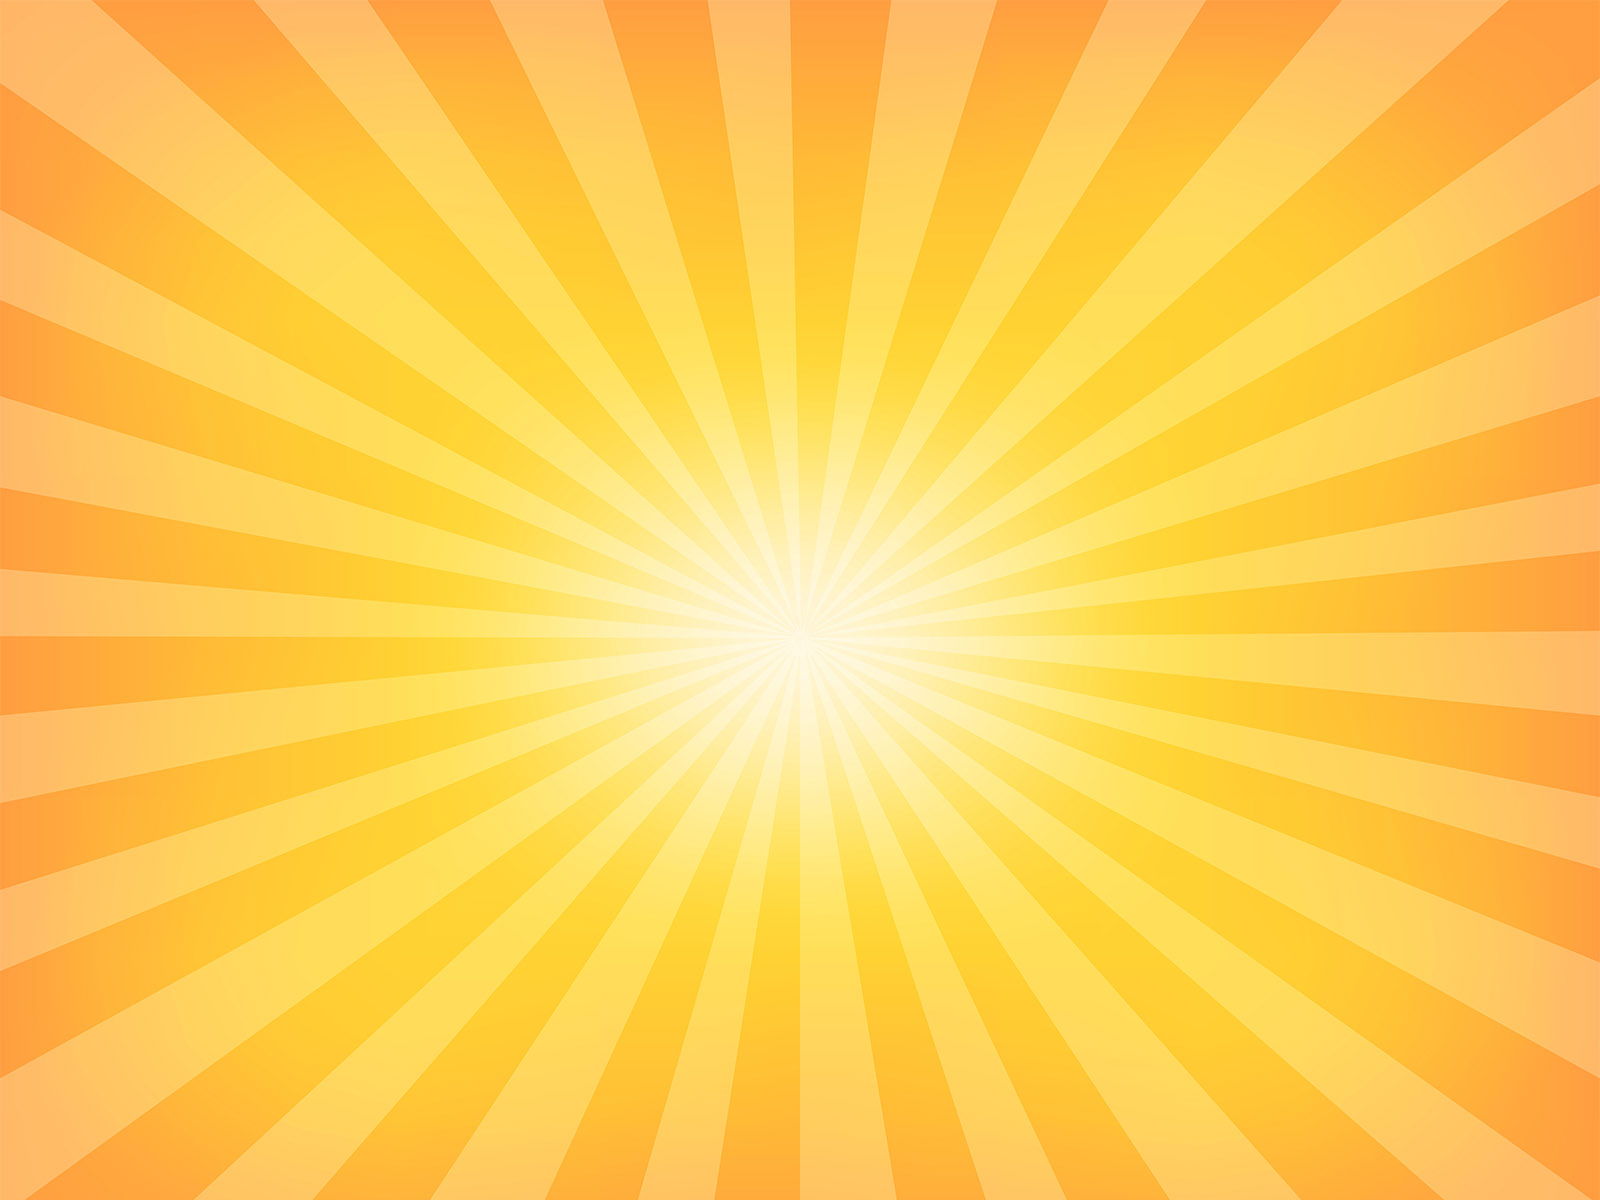 Best 49+ Sunburst Backgrounds on HipWallpaper.